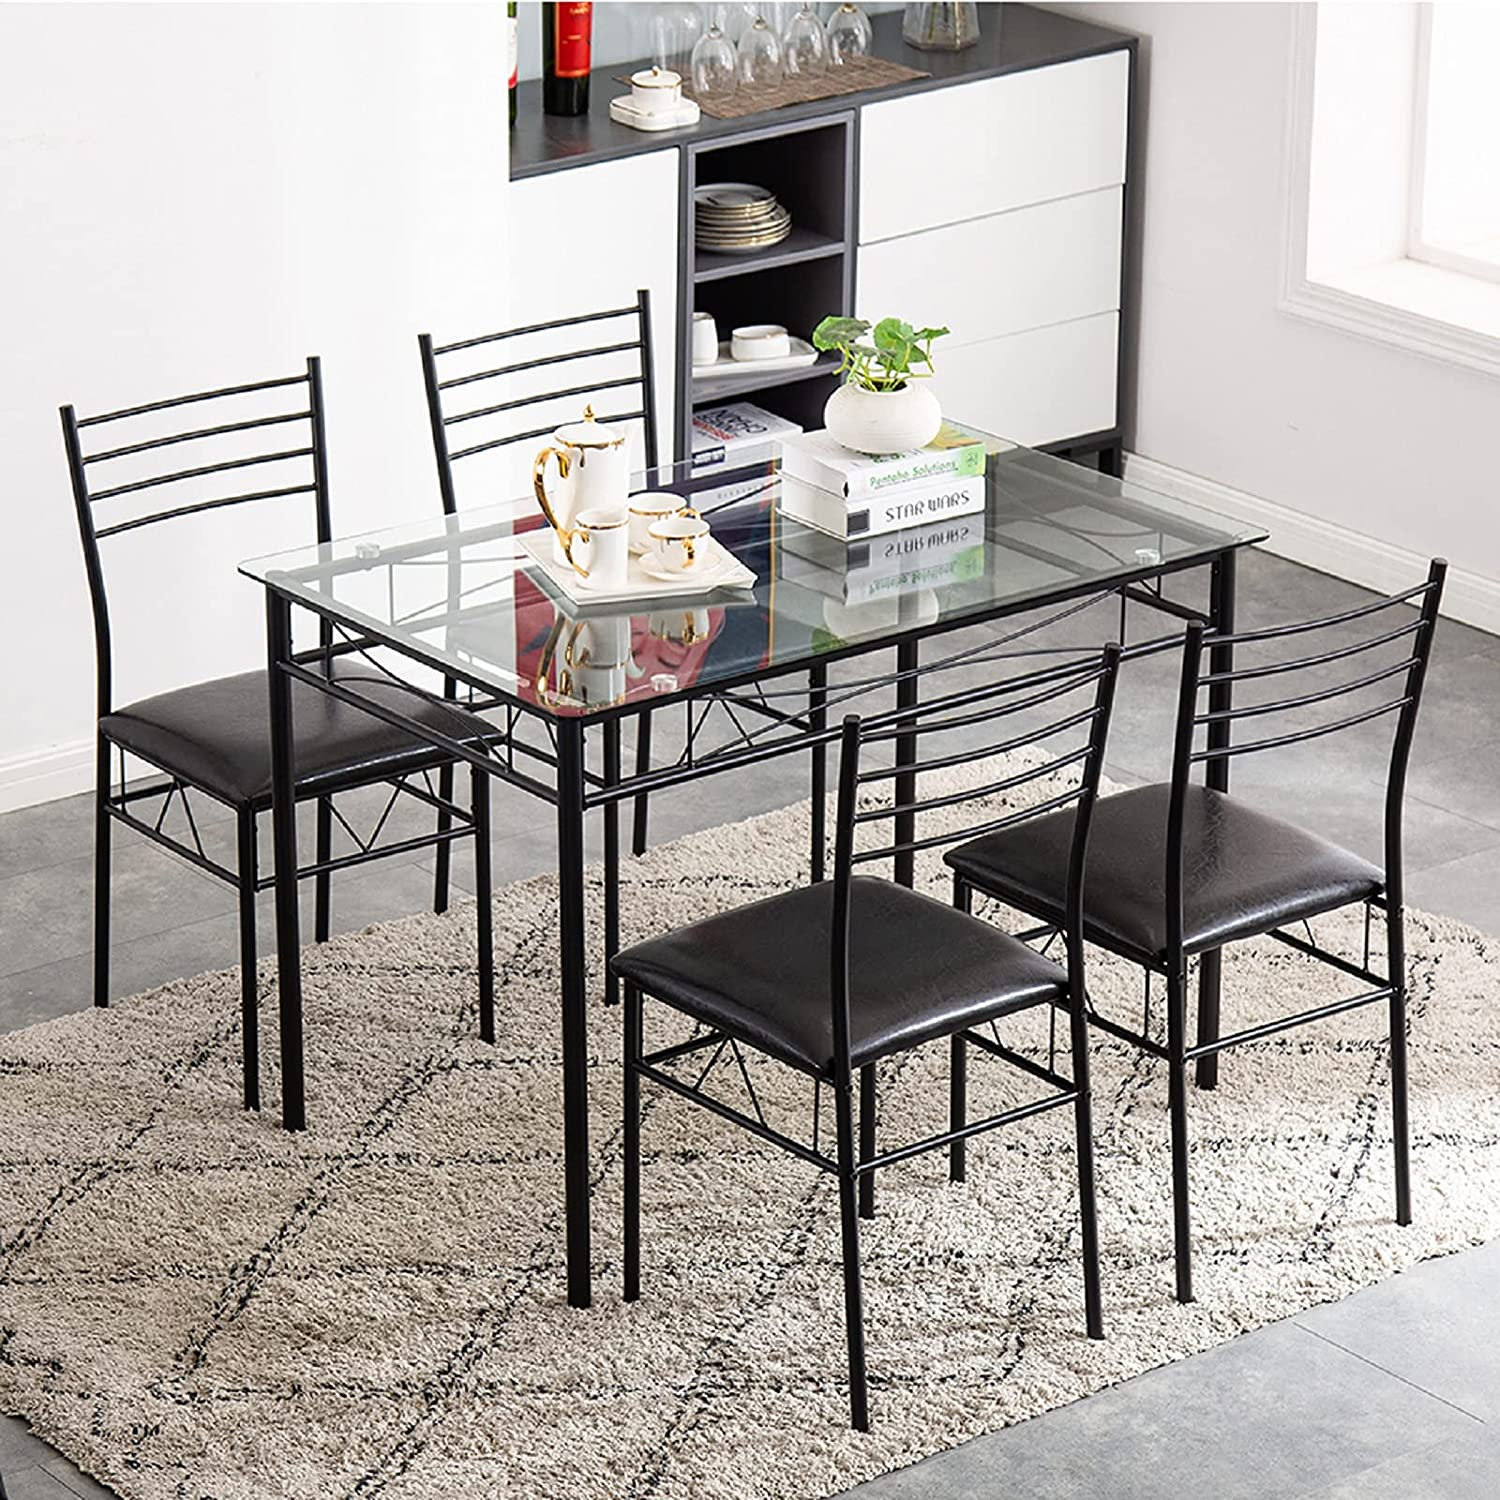 5 Piece Dining Room Table And Chair Set, Wrought Iron Dining Table And Chair Set